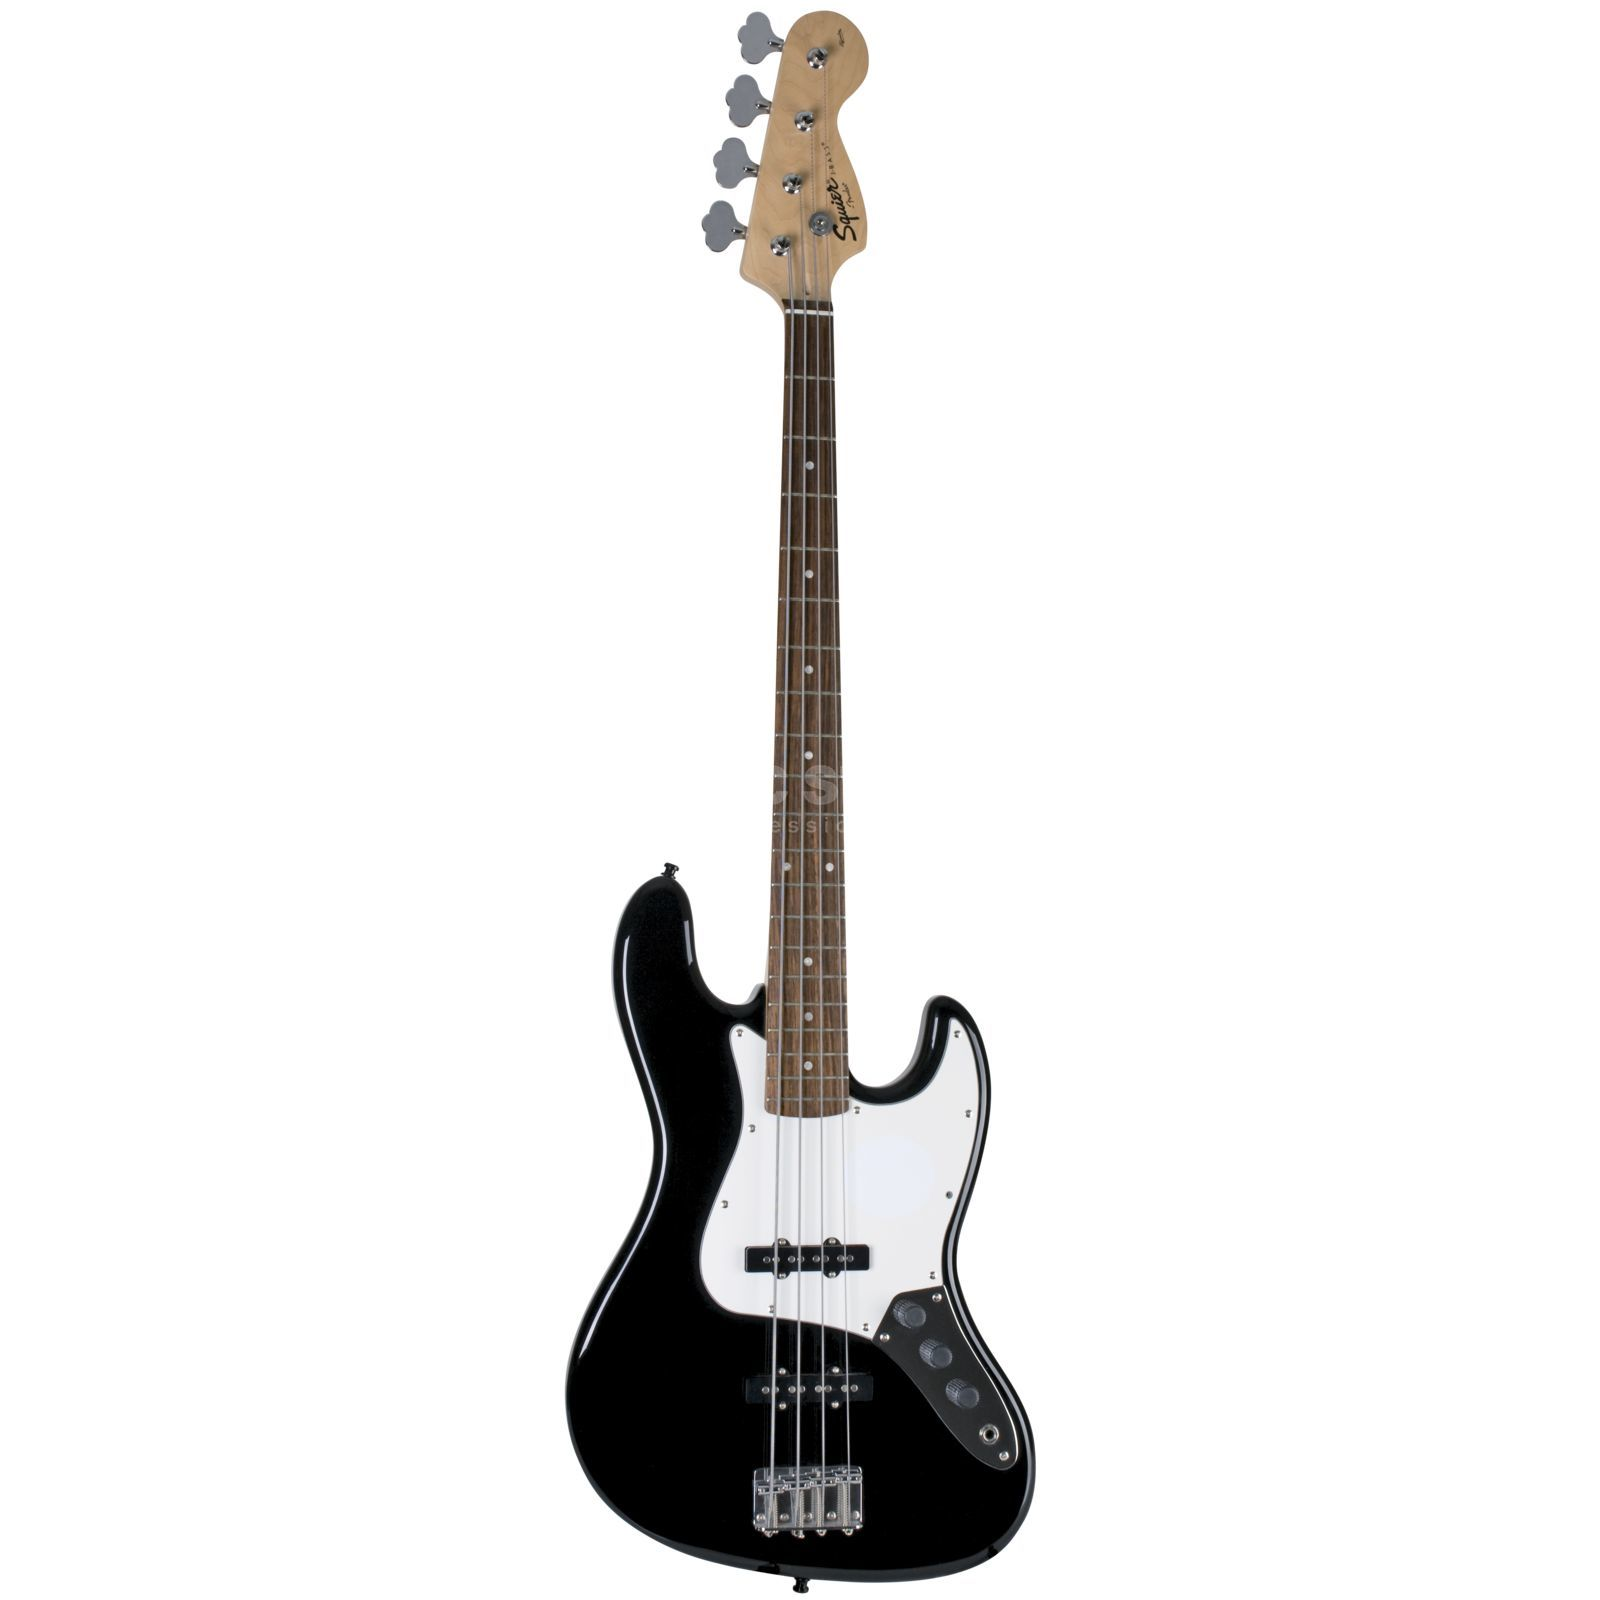 Fender Squier Squier Affinity Jazz Bass RW Black Изображение товара